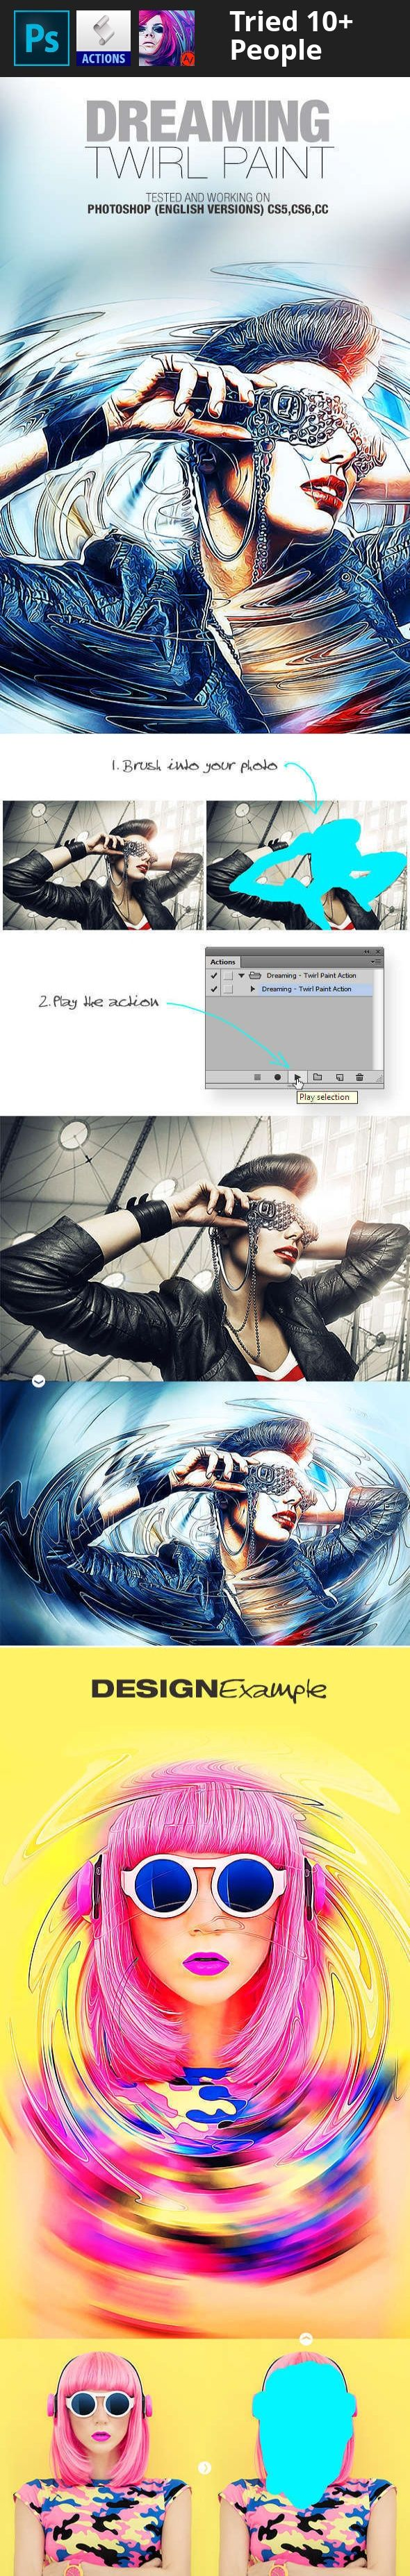 abstract, action, actions, advertising, amorjesu, beautiful, dispersion, double exposure, dream, dreaming, effect, flyer, hipster, manipulation, mixart, paint, painting, photo, photo templates, photoshop, poster, sandstorm, shatter, shimmer, texture, twirl     You may also like:  Professional Skin Art Photoshop Action Modern Art V1 Photoshop Action     Tested and working on Photoshop (English versions) CS5,CS6,CC  How to change language    FEATURES   Easy to use Intructions in the Help…